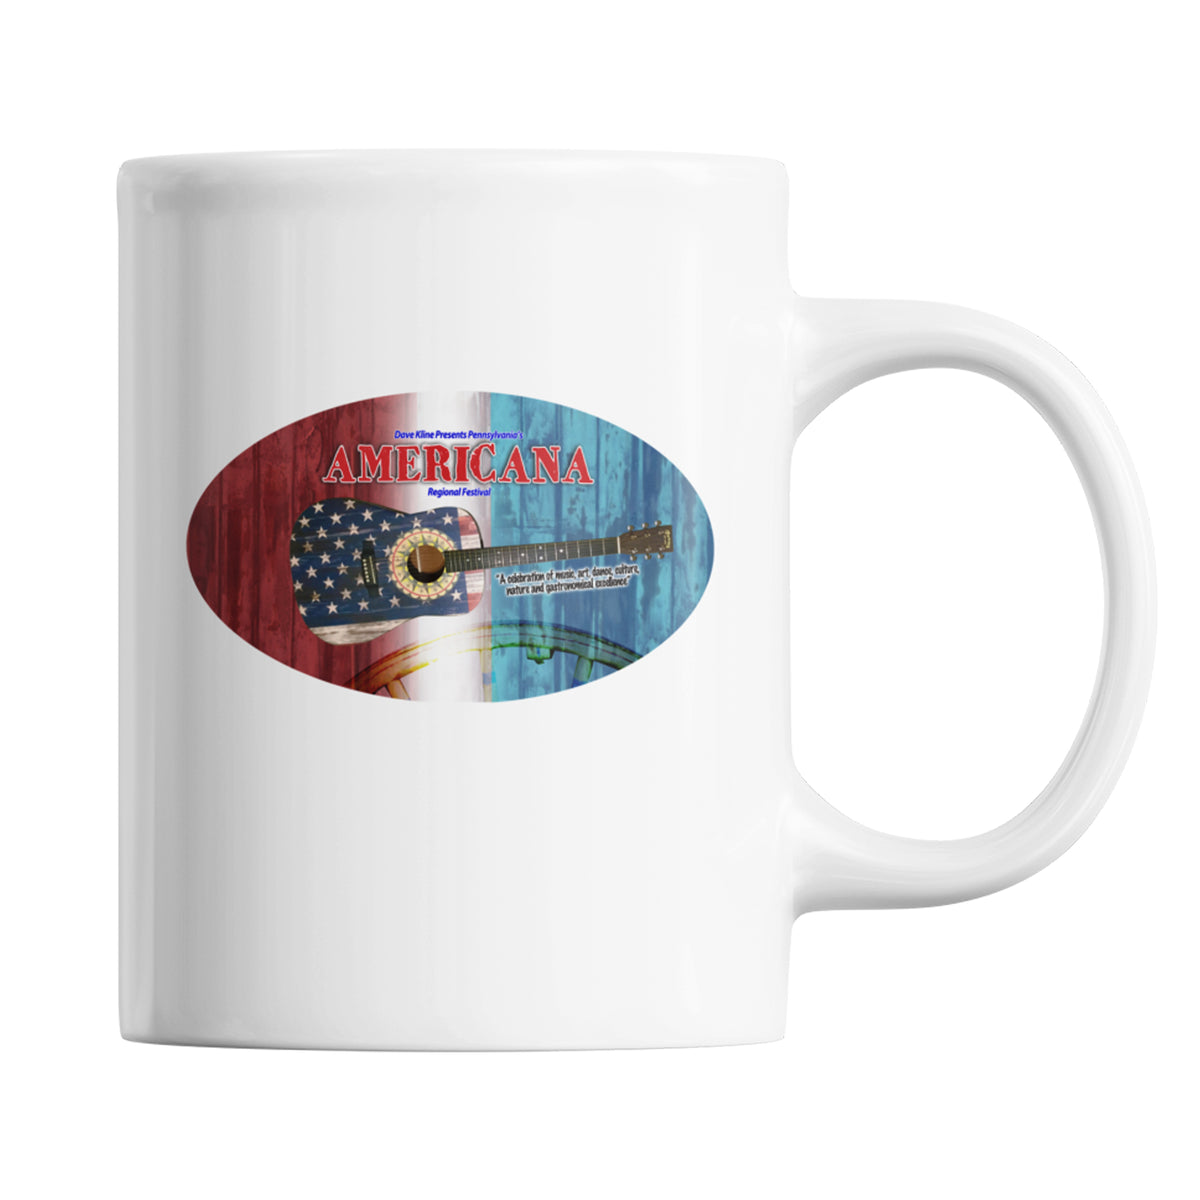 Pennsylvania's Americana Region Fest We Support PA Coffee Mug